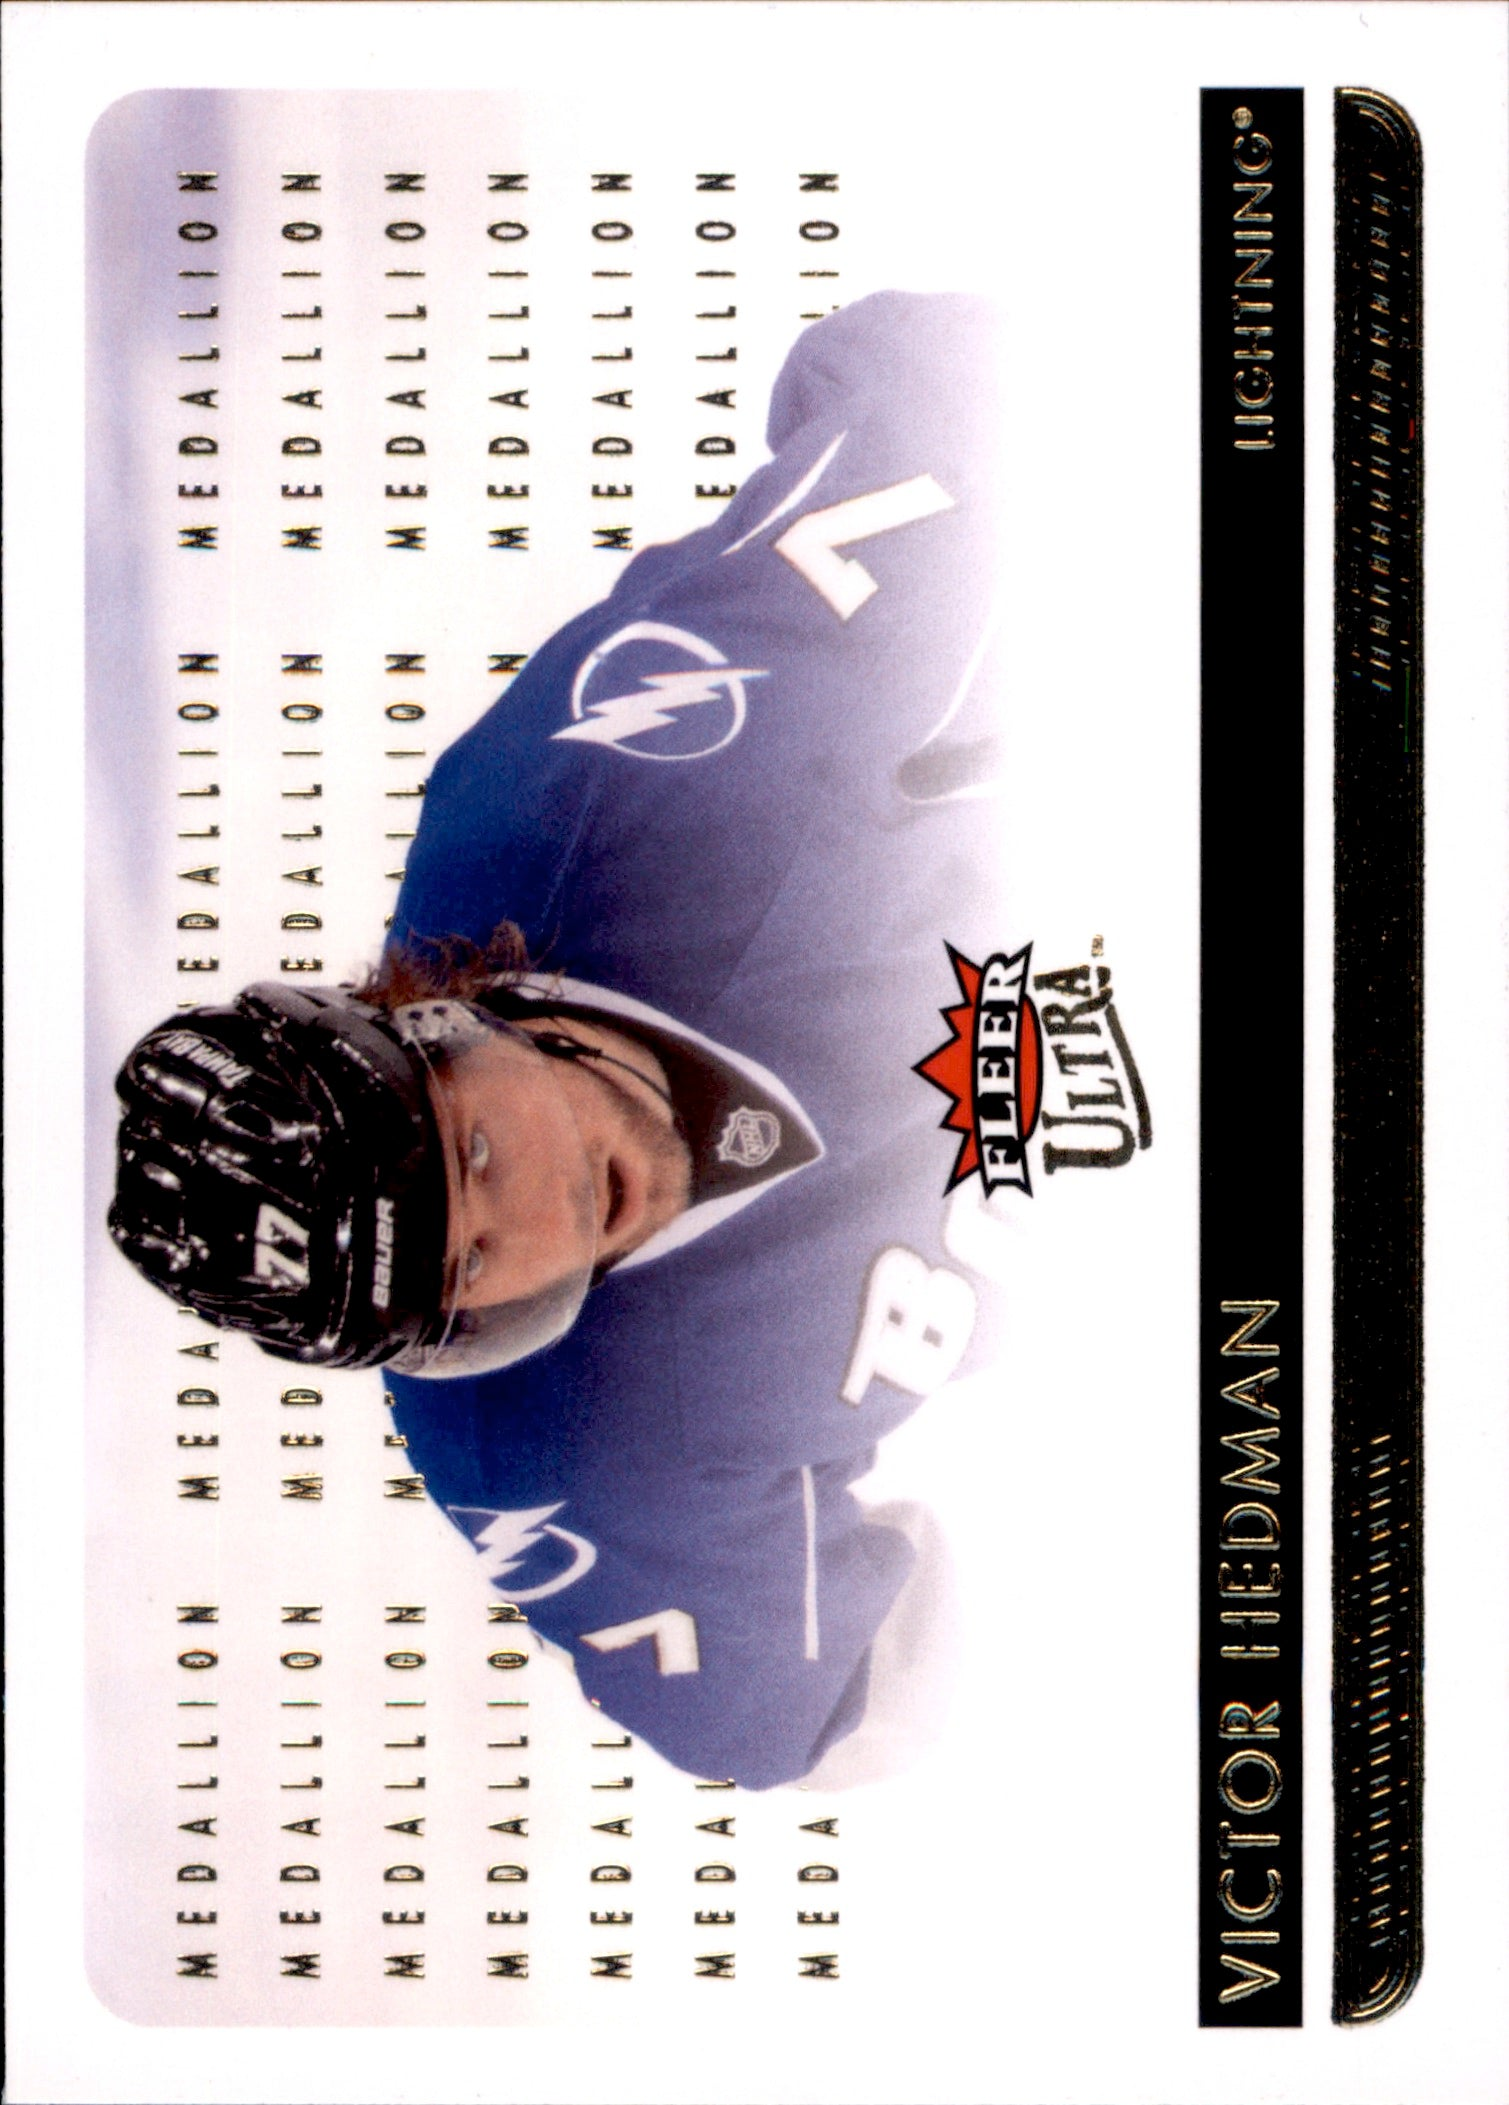 2014-15 Fleer Ultra Gold Medallion #173 Victor Hedman | Eastridge Sports Cards